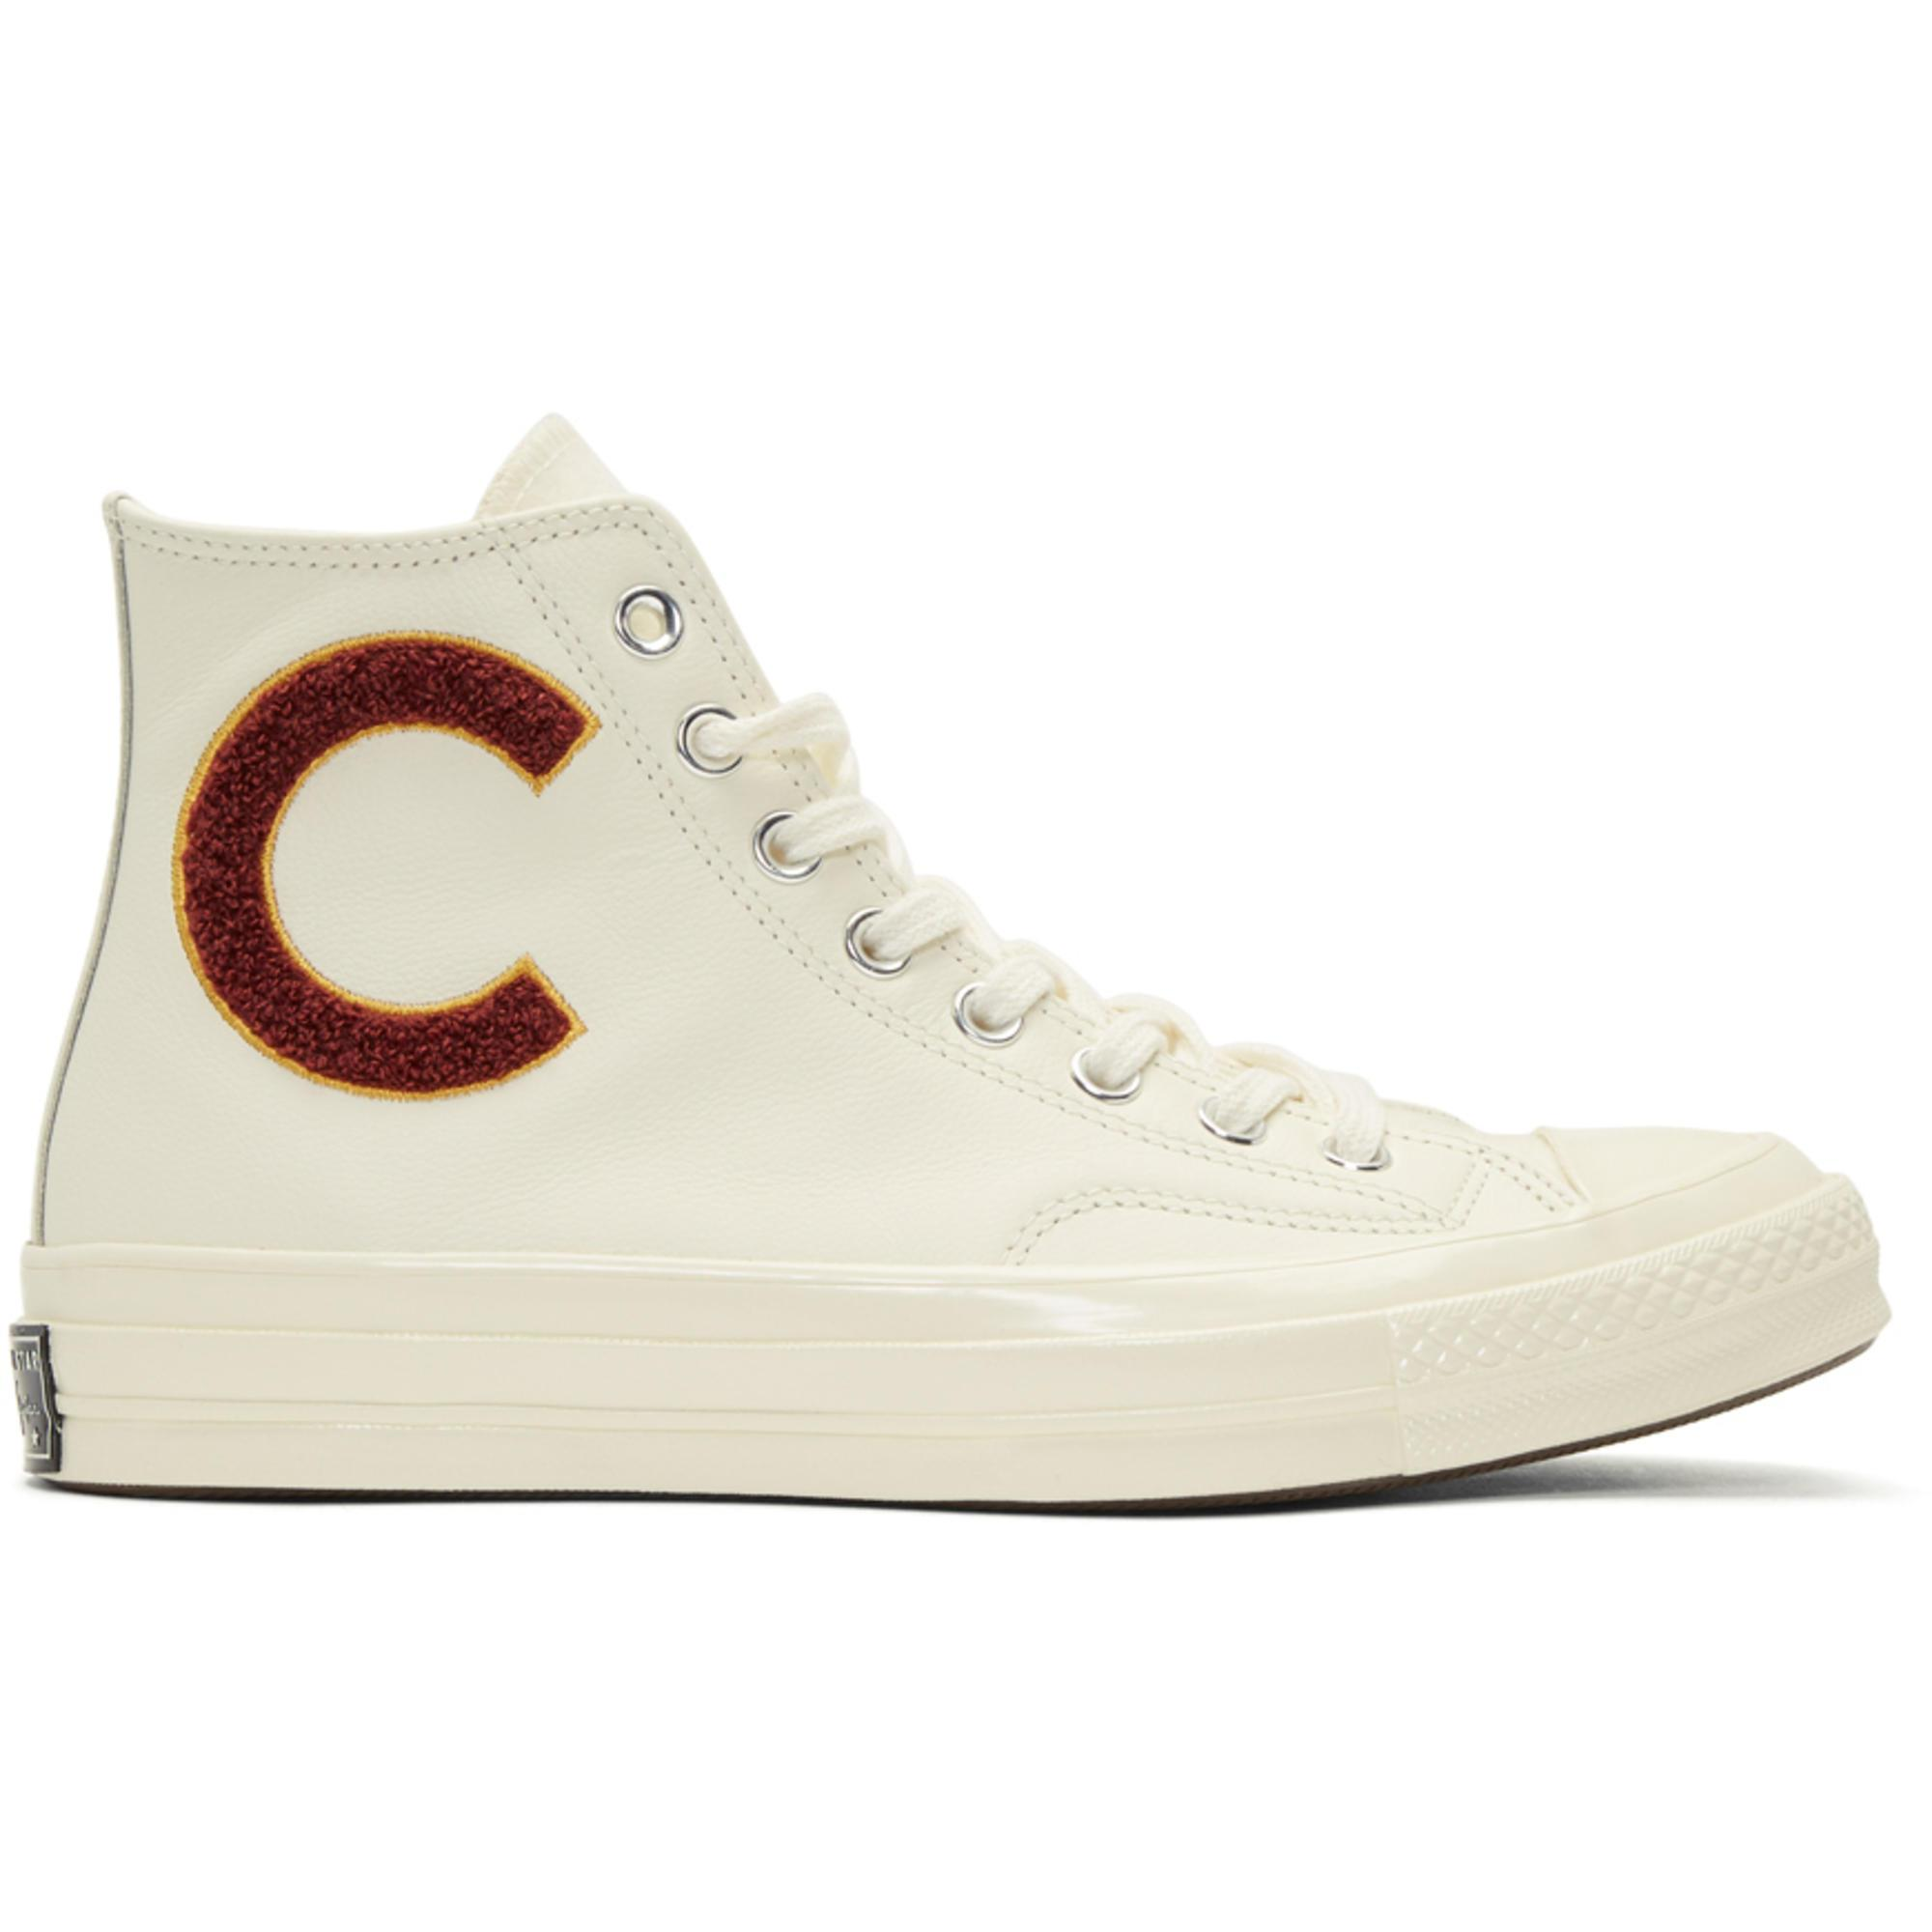 3b9b008e9e4 Lyst - Converse White Chuck Taylor All Star 70 Wordmark Wool High ...